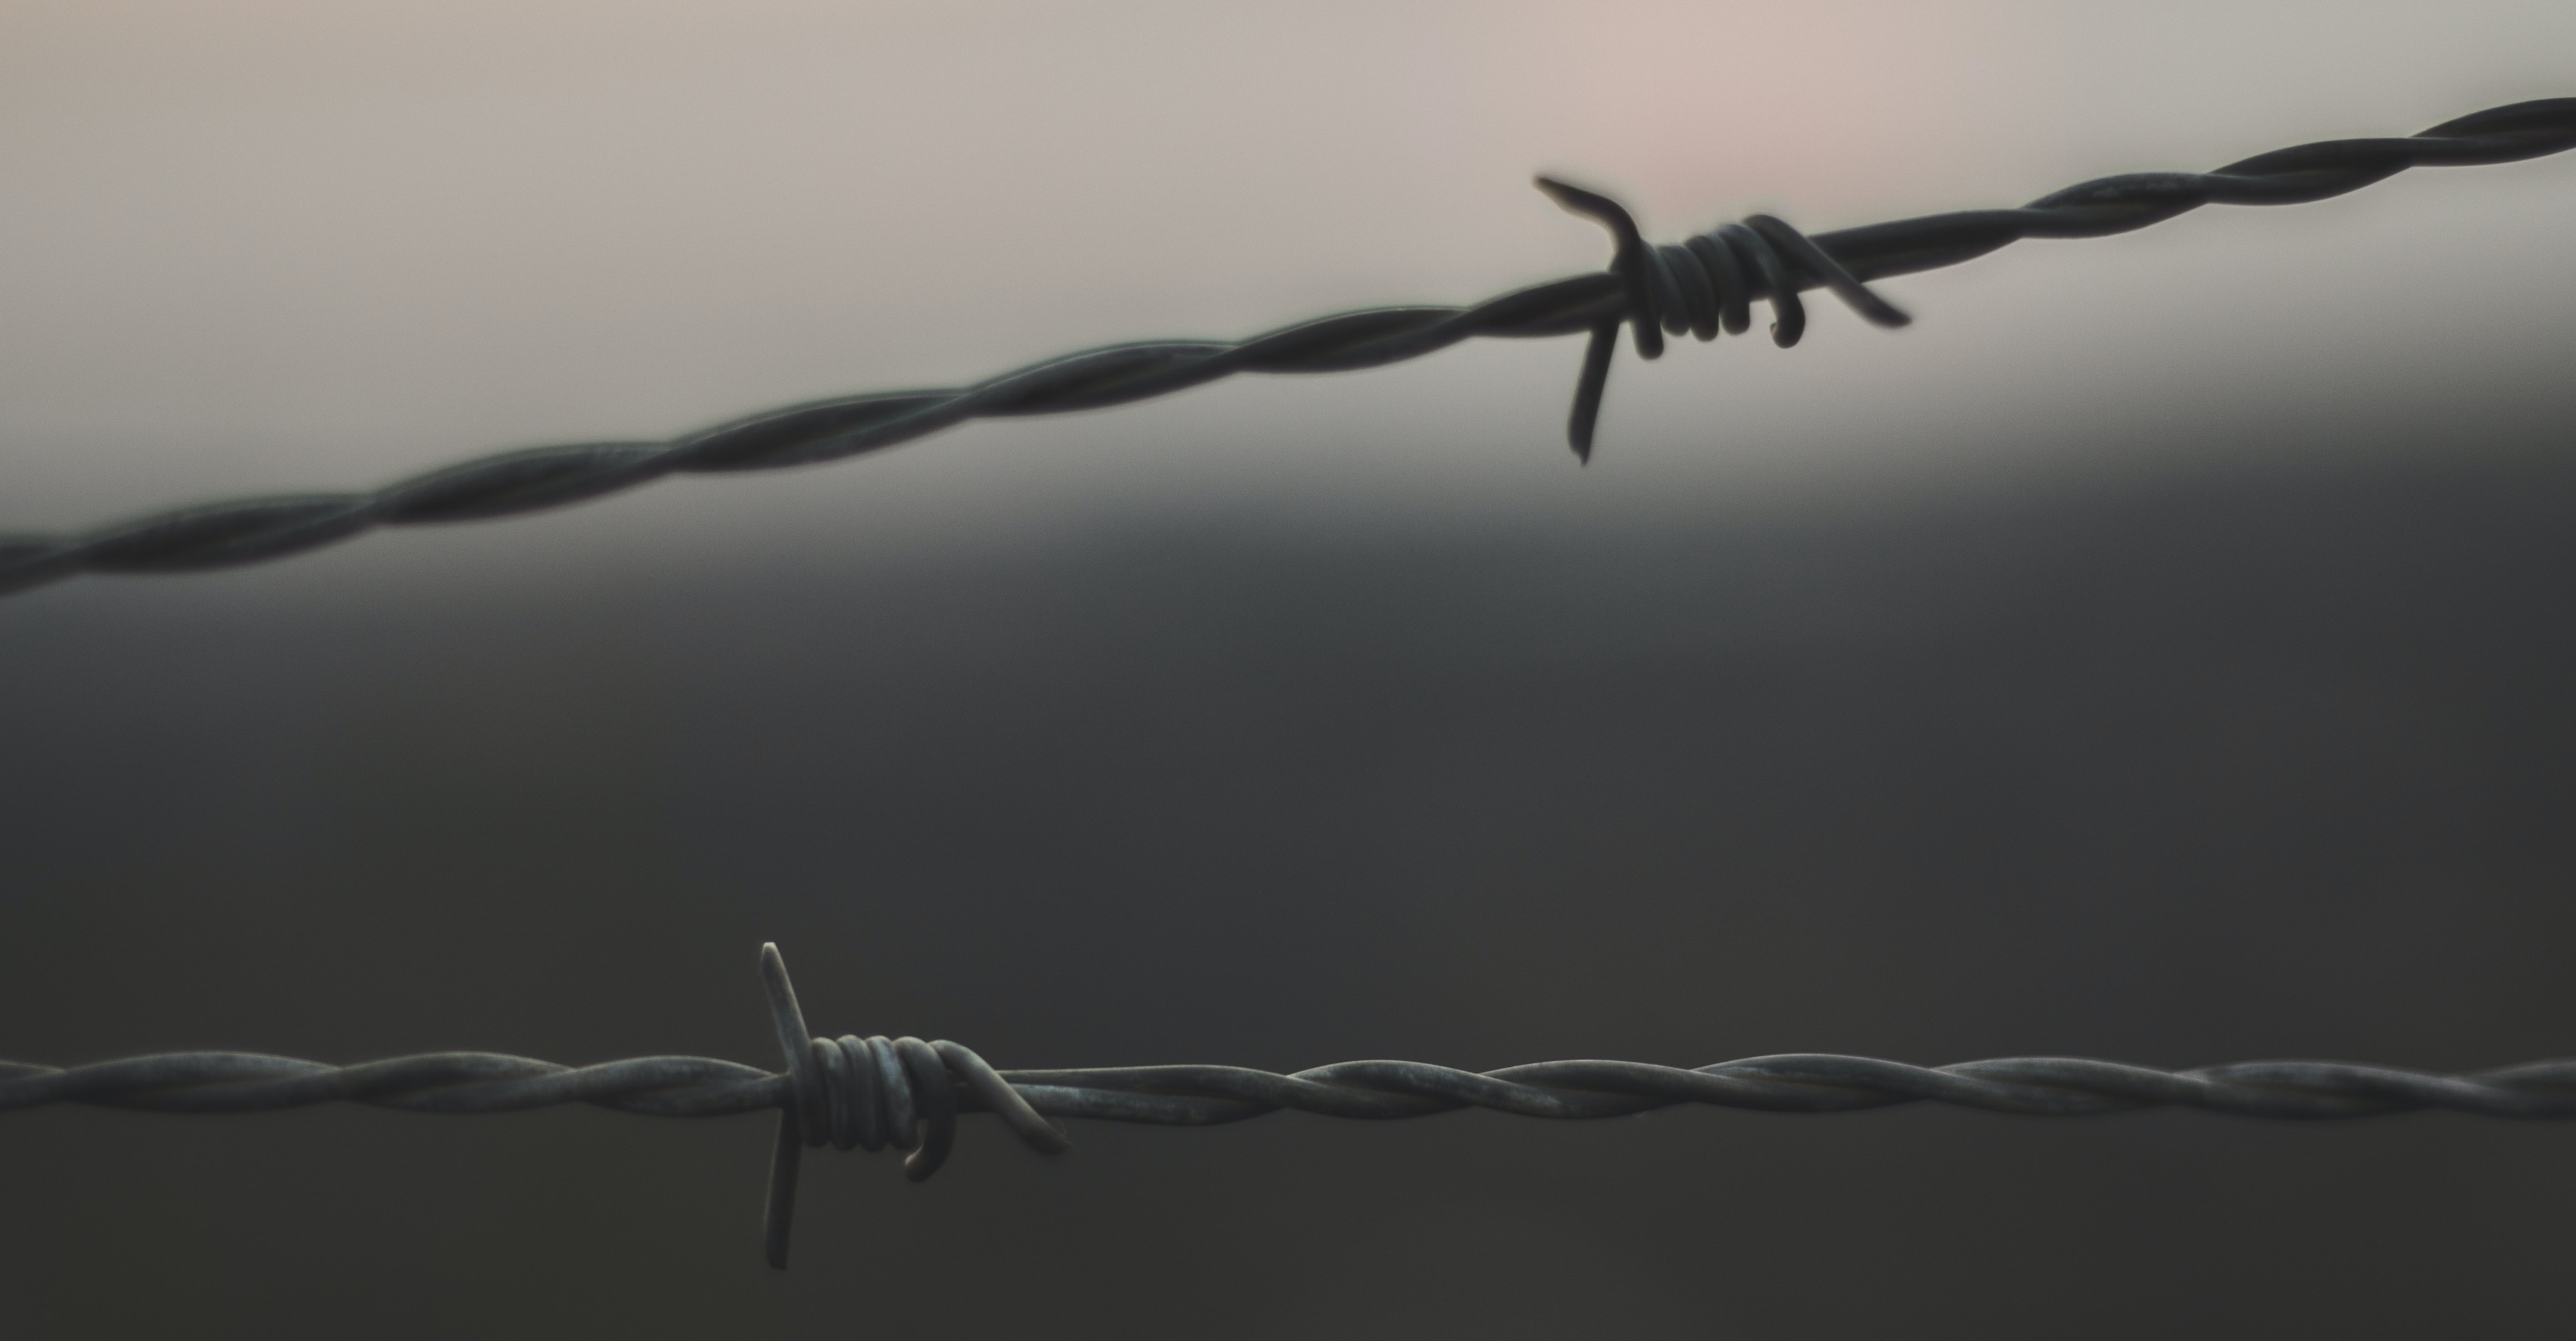 focus photo of gray barb wire